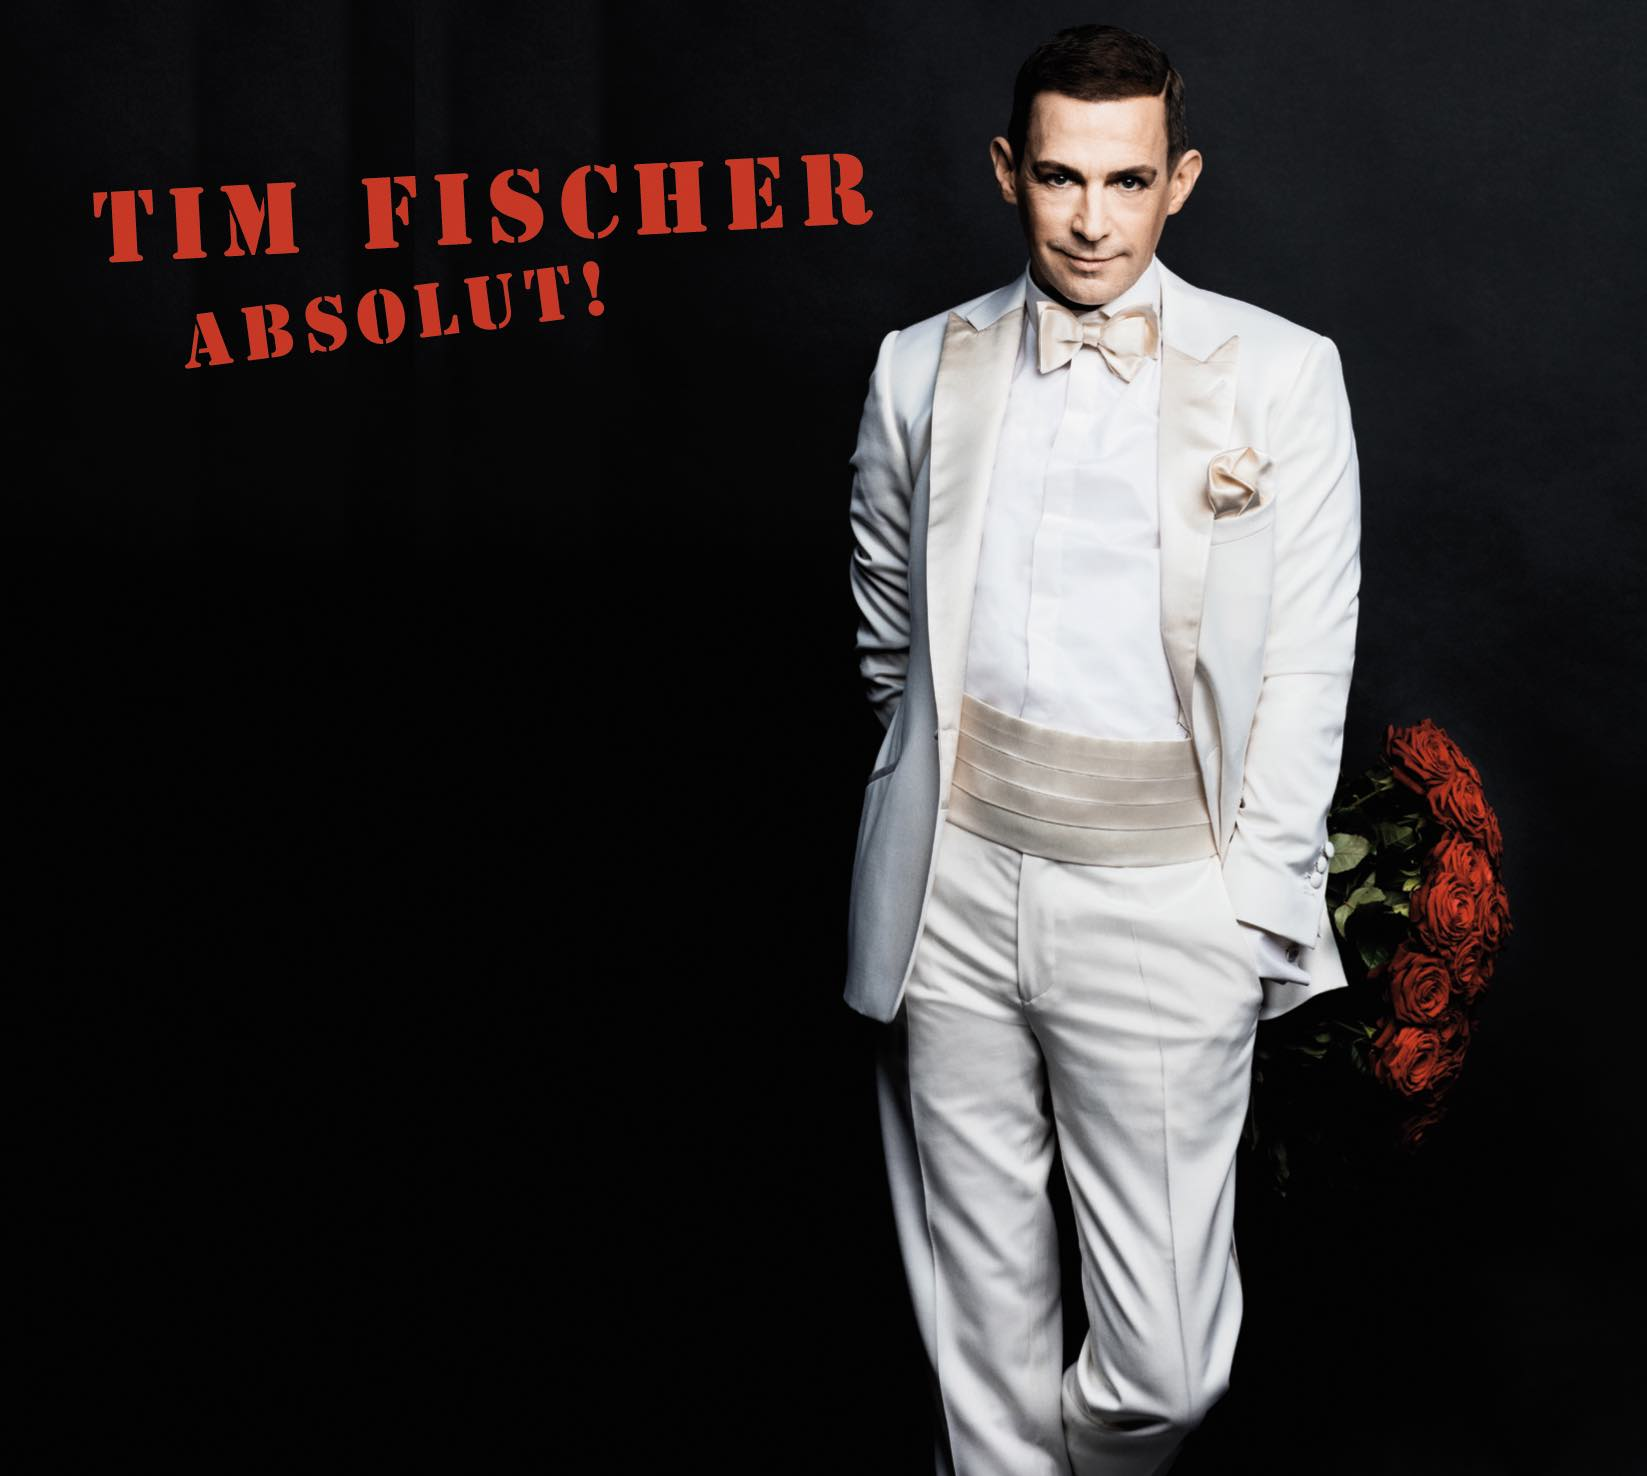 Tim Fischer ABSOLUT! CD-Cover